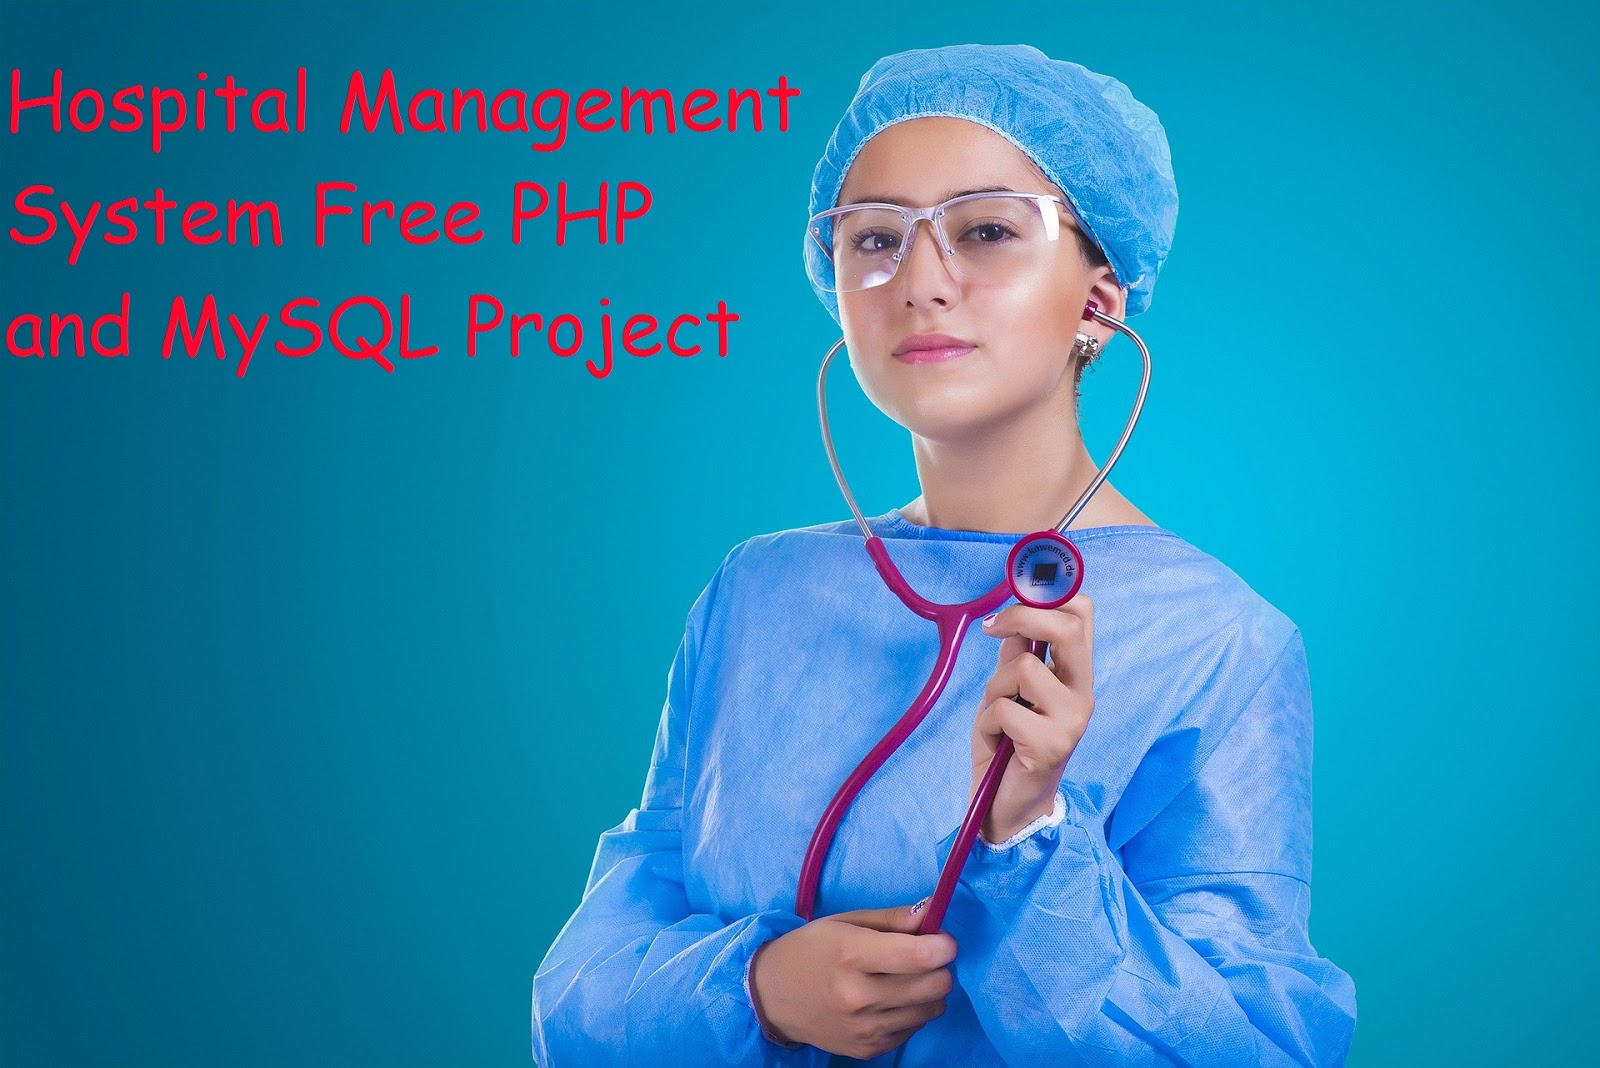 Hospital Management System Free PHP and MySQL Project - VTUPulse